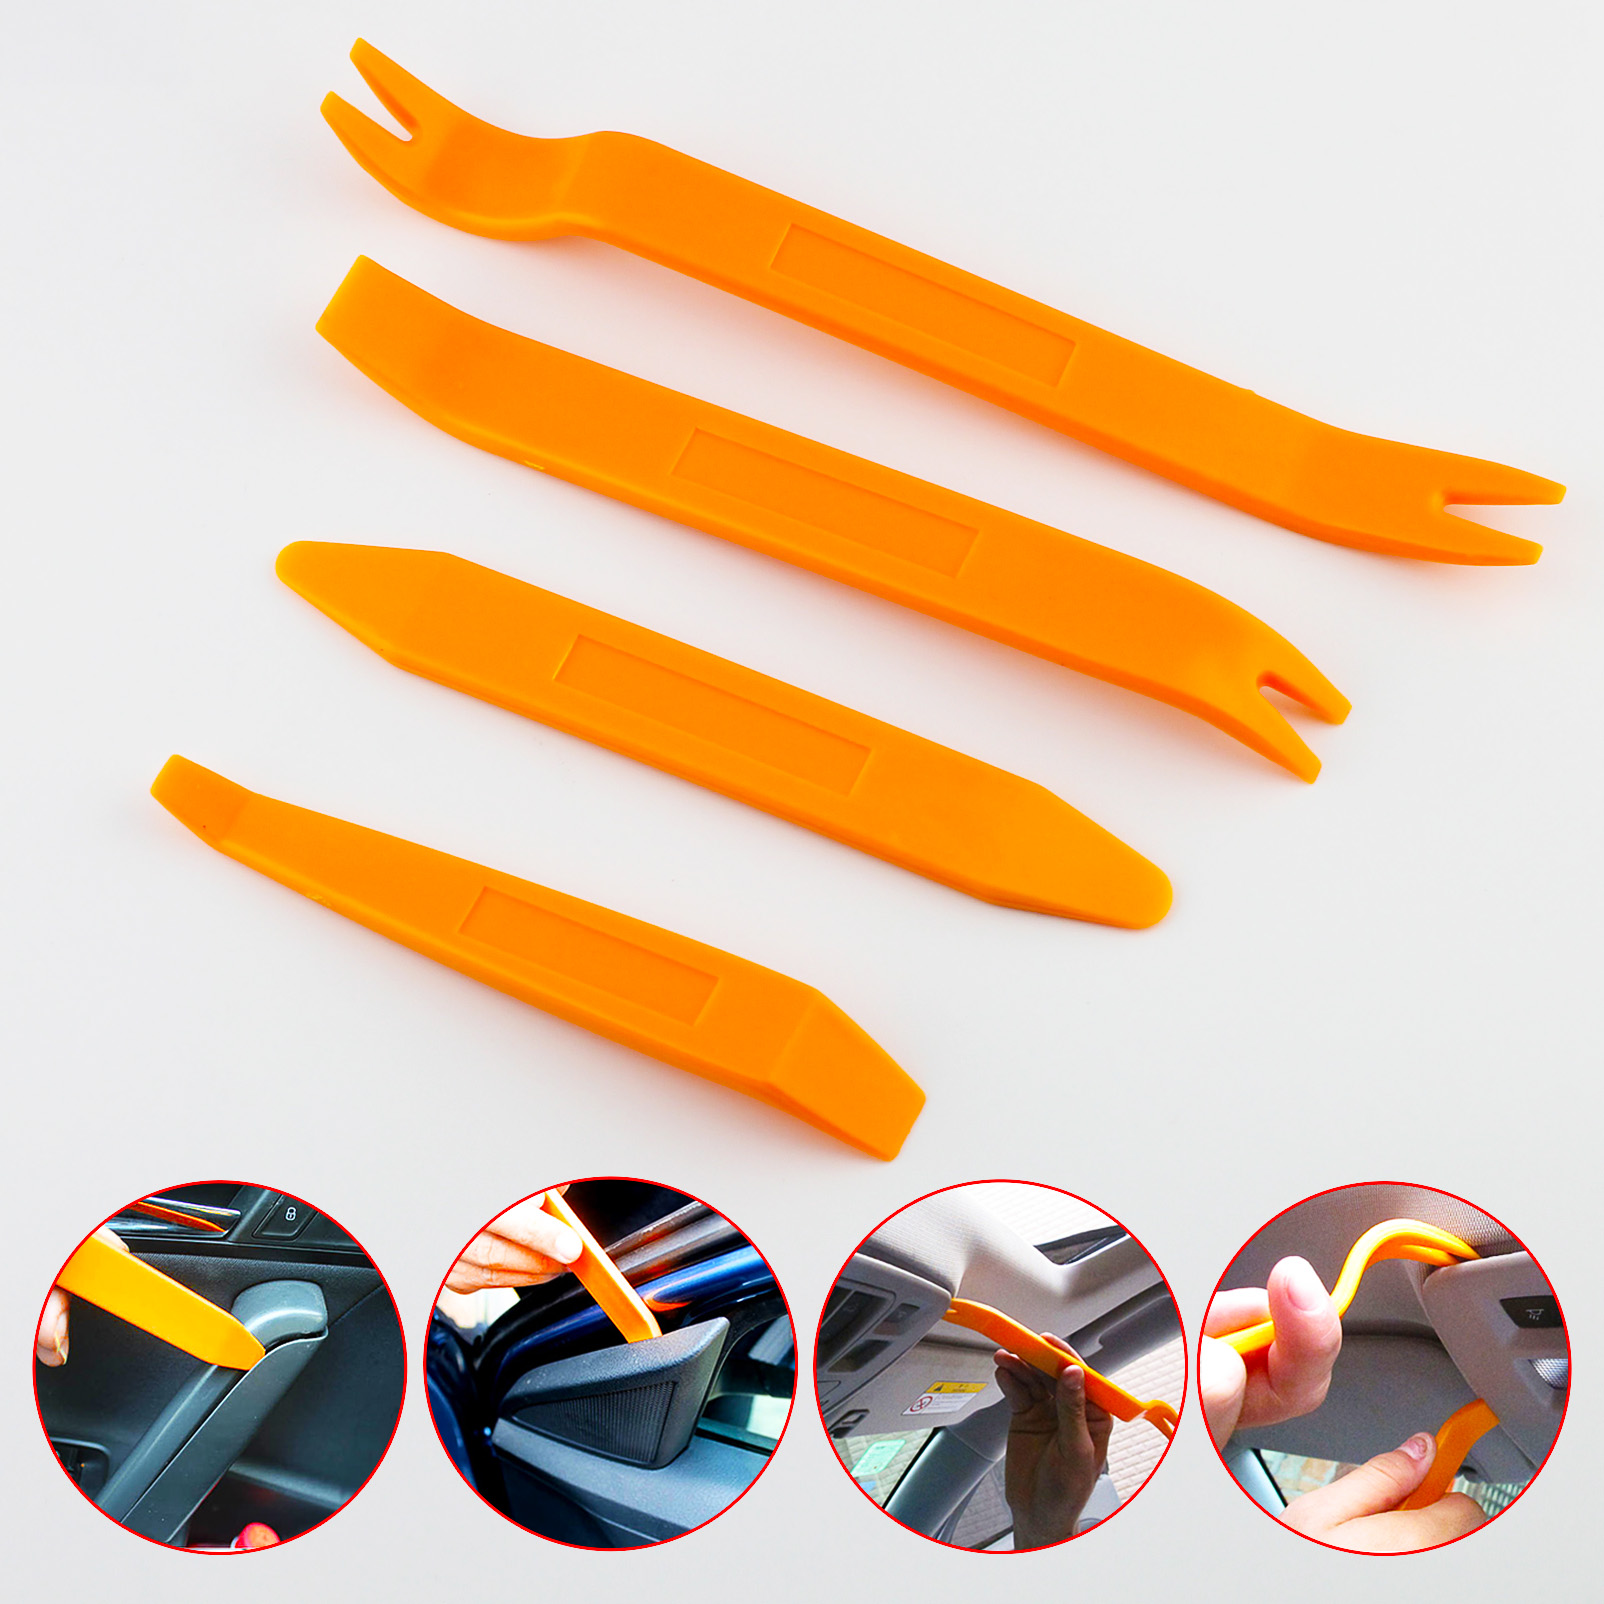 Durable Car Removal Dismounting Kits Interior Door Dashboard Clips Panel Assist Clearance Disassemble Tools 4Pcs/Set Accessories